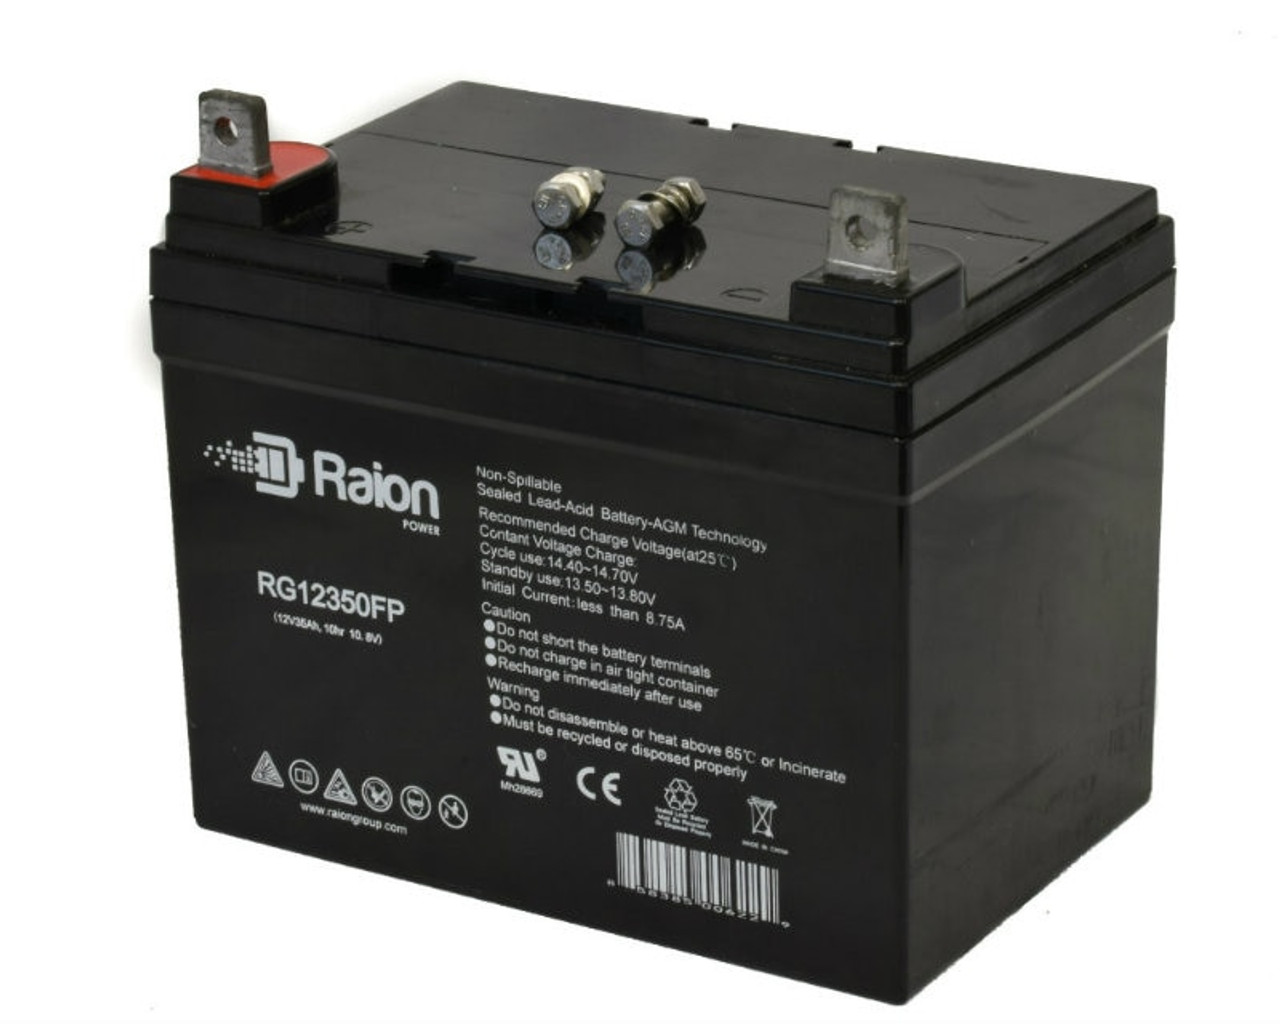 Raion Power RG12350FP 12V 35Ah Sealed Lead Acid Battery With FP Terminals